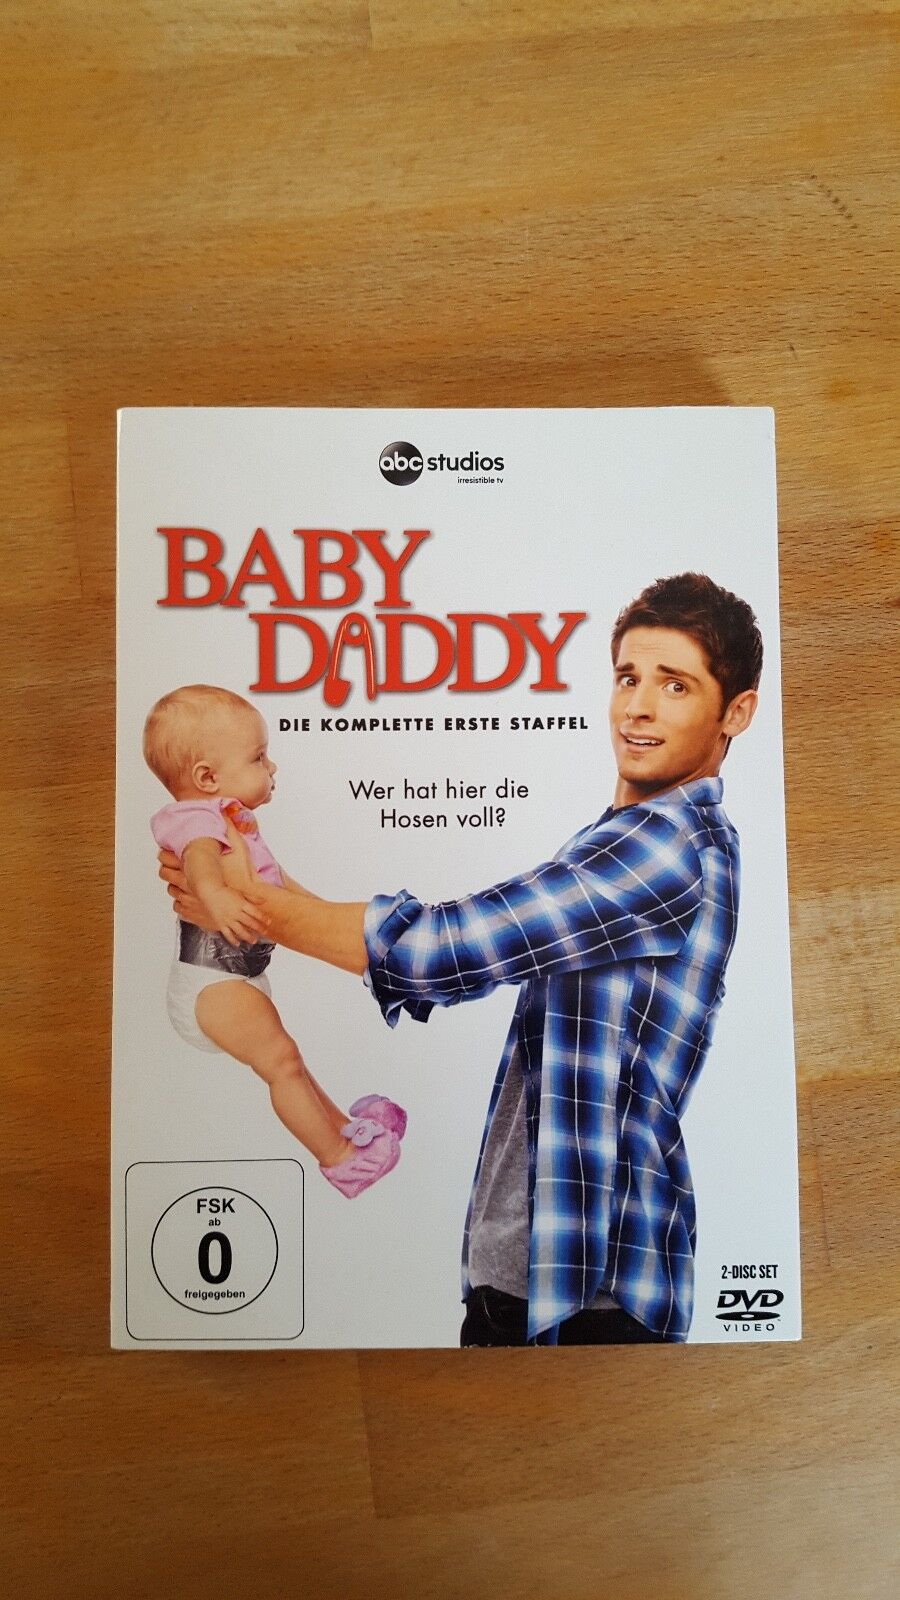 DVD Baby Daddy Staffel 1 2 DVDs vergriffen